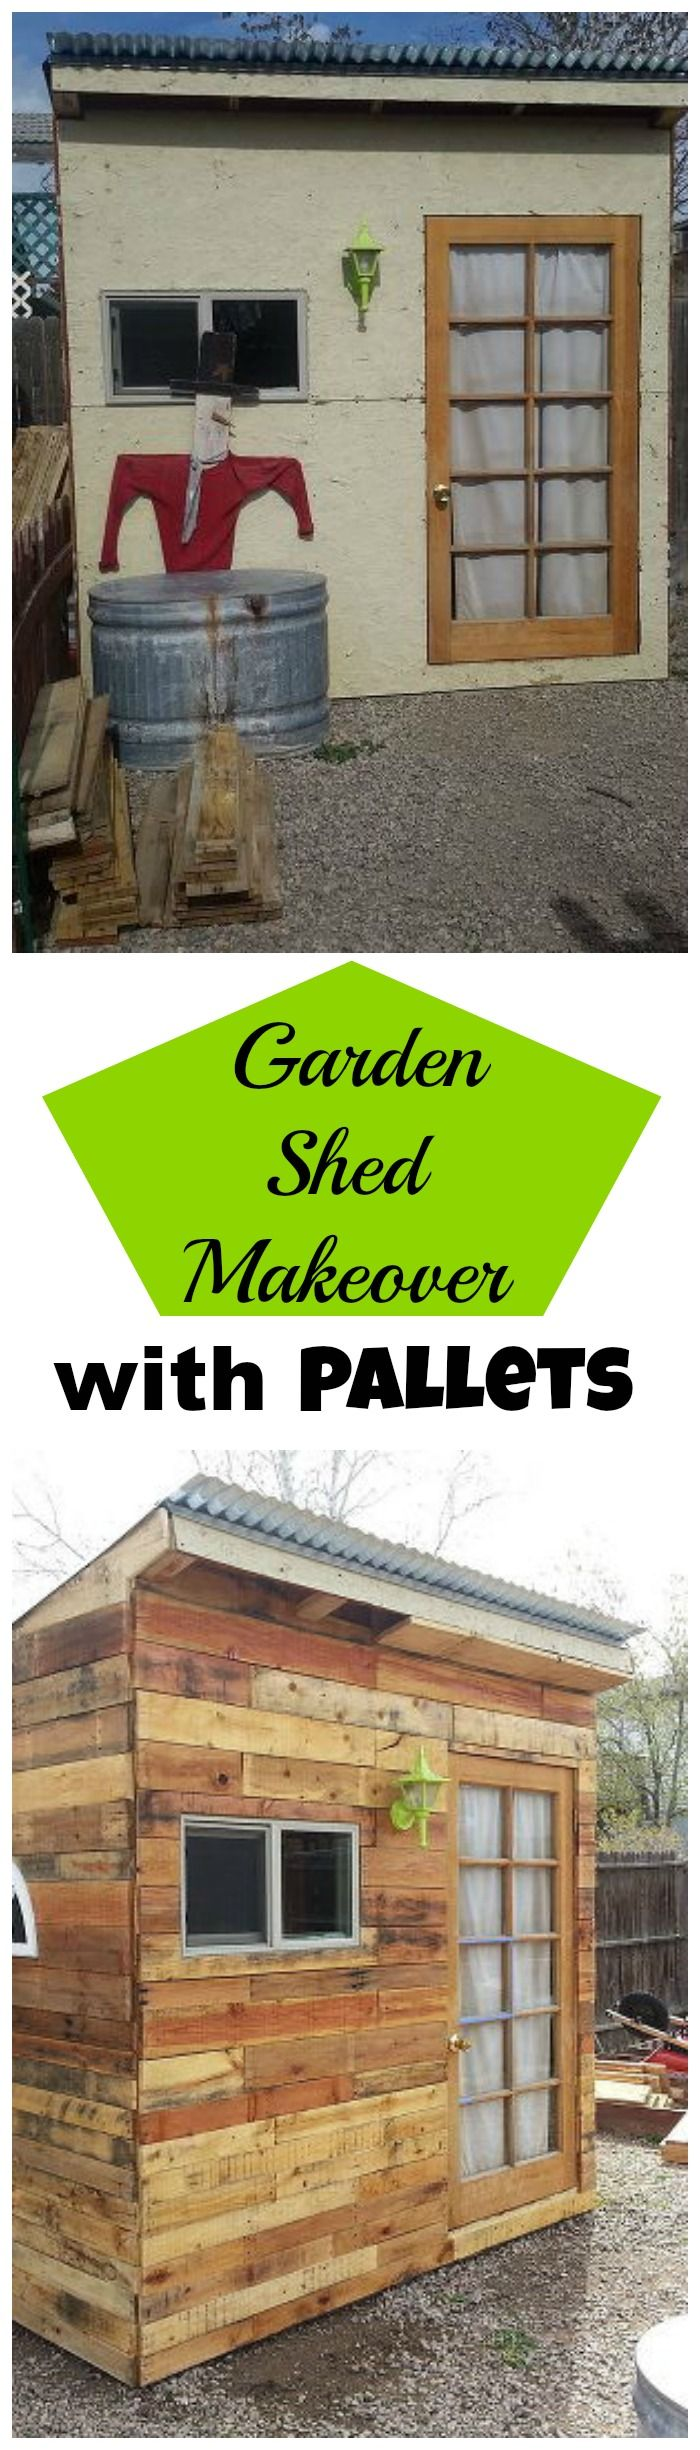 Hometalk easy cabinet door projects - Building A Garden Shed From Pallets